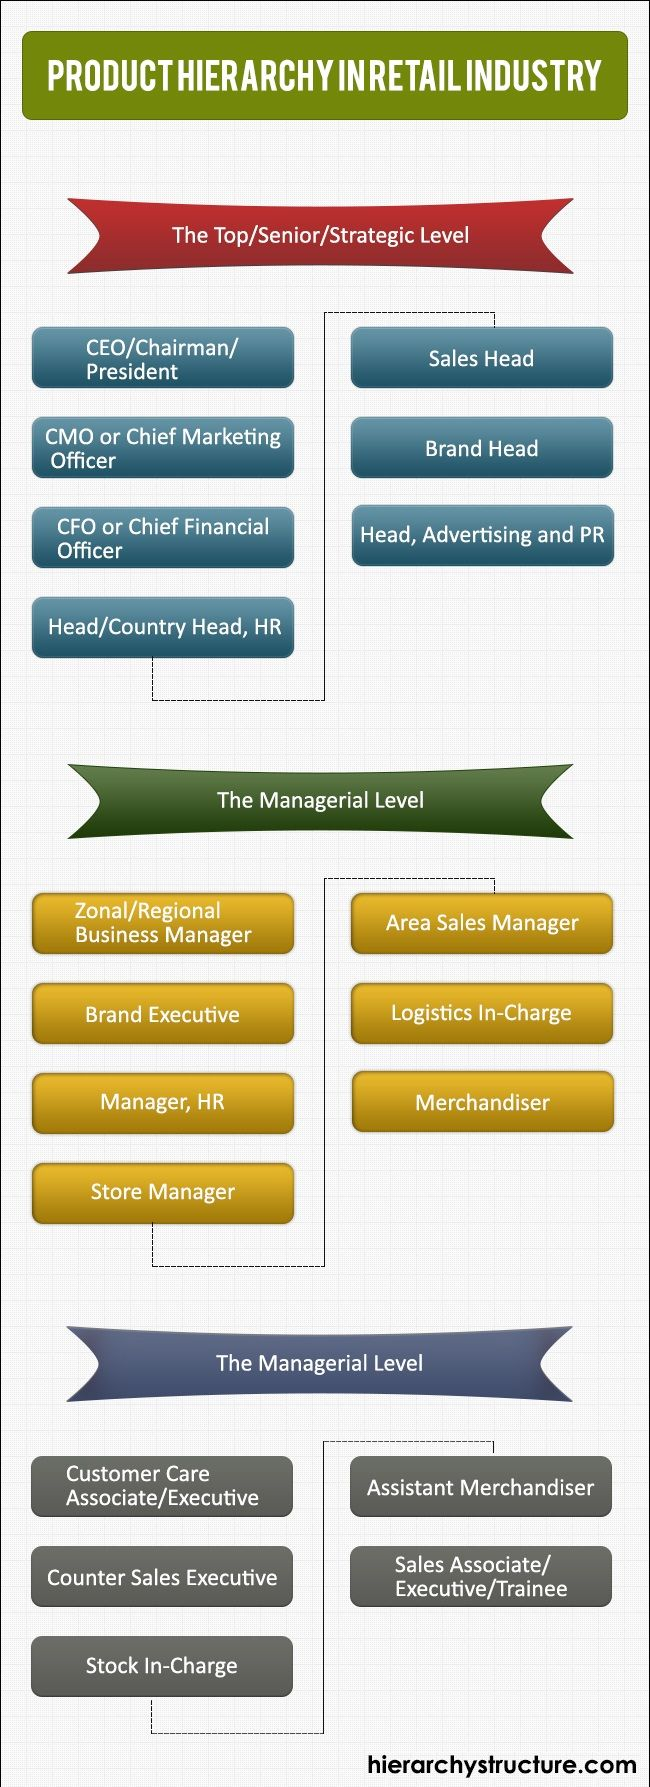 Product Hierarchy In Retail Industry Hierarchy Chief Marketing Officer Retail